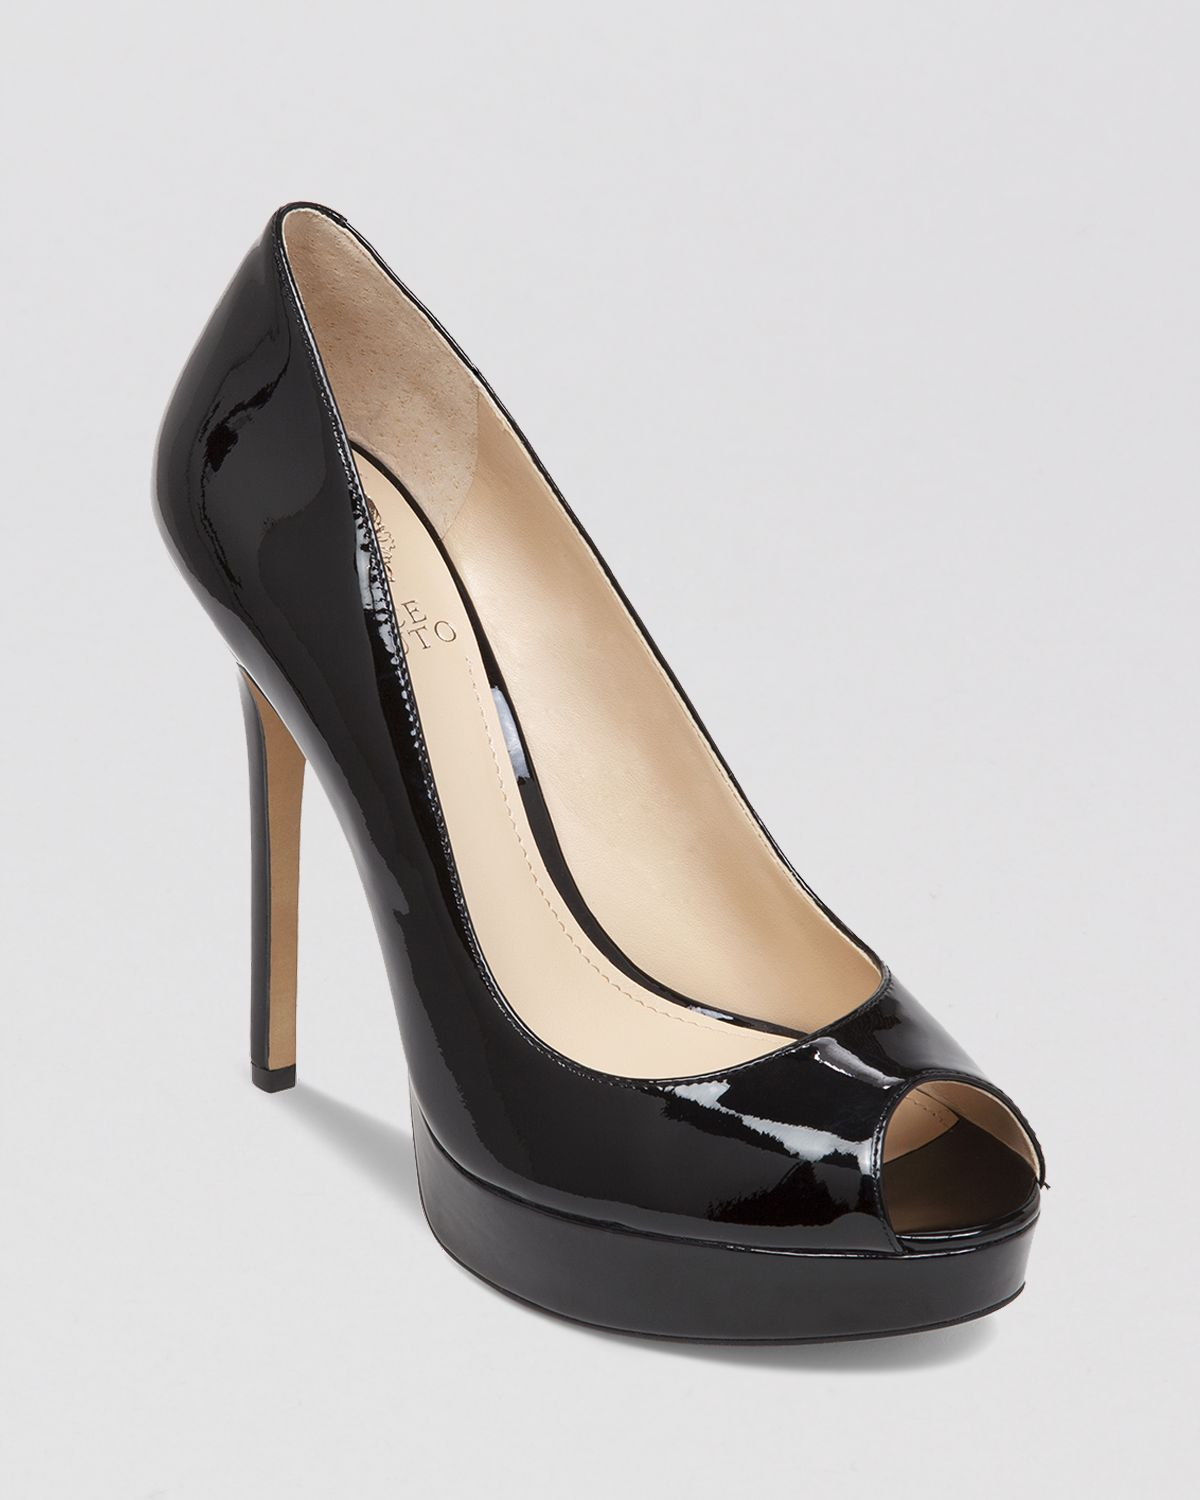 Vince camuto Peep Toe Platform Pumps - Lorim High Heel in Black | Lyst